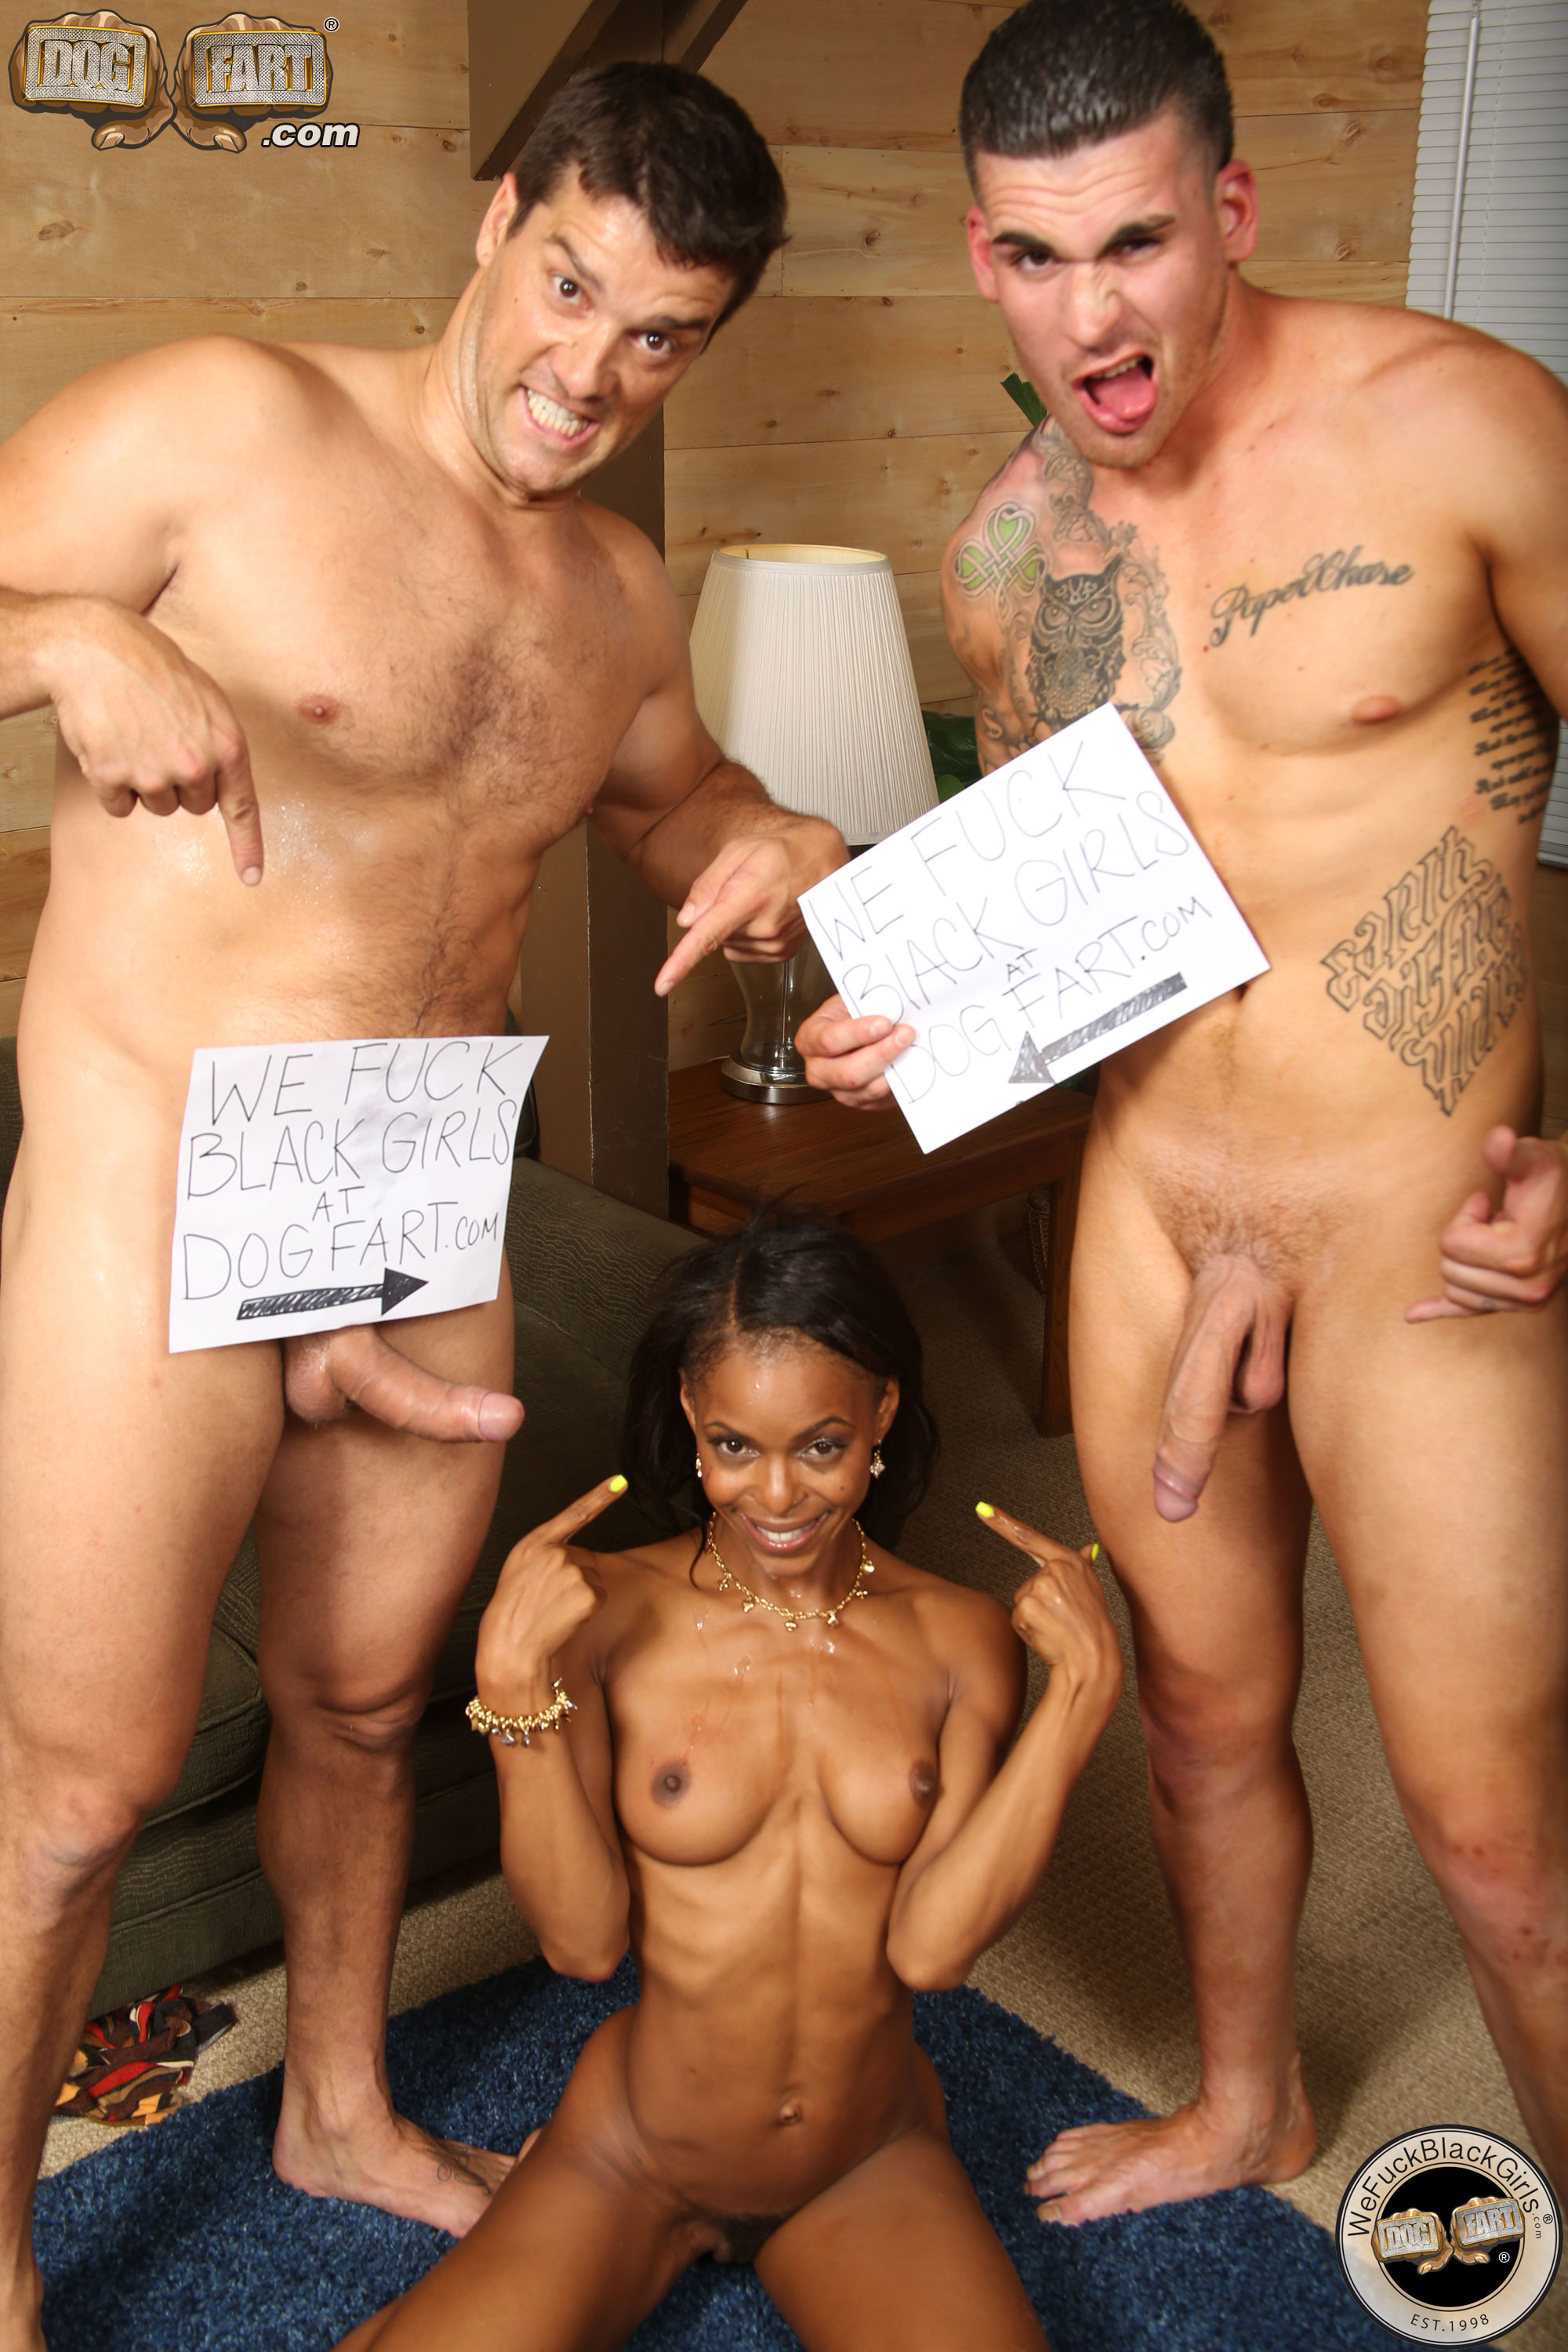 galleries WeFuckBlackGirls content marie luv pic 30